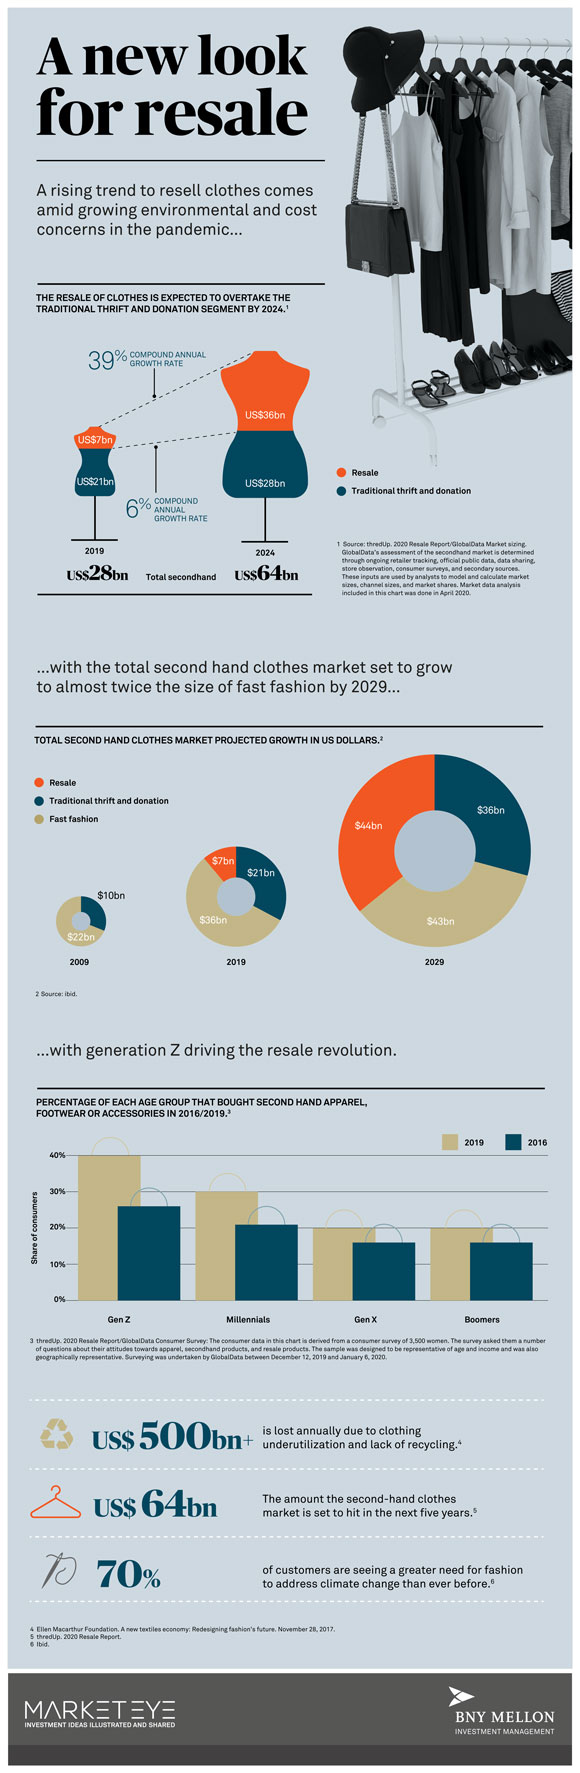 Fast fashion and the rise of resale